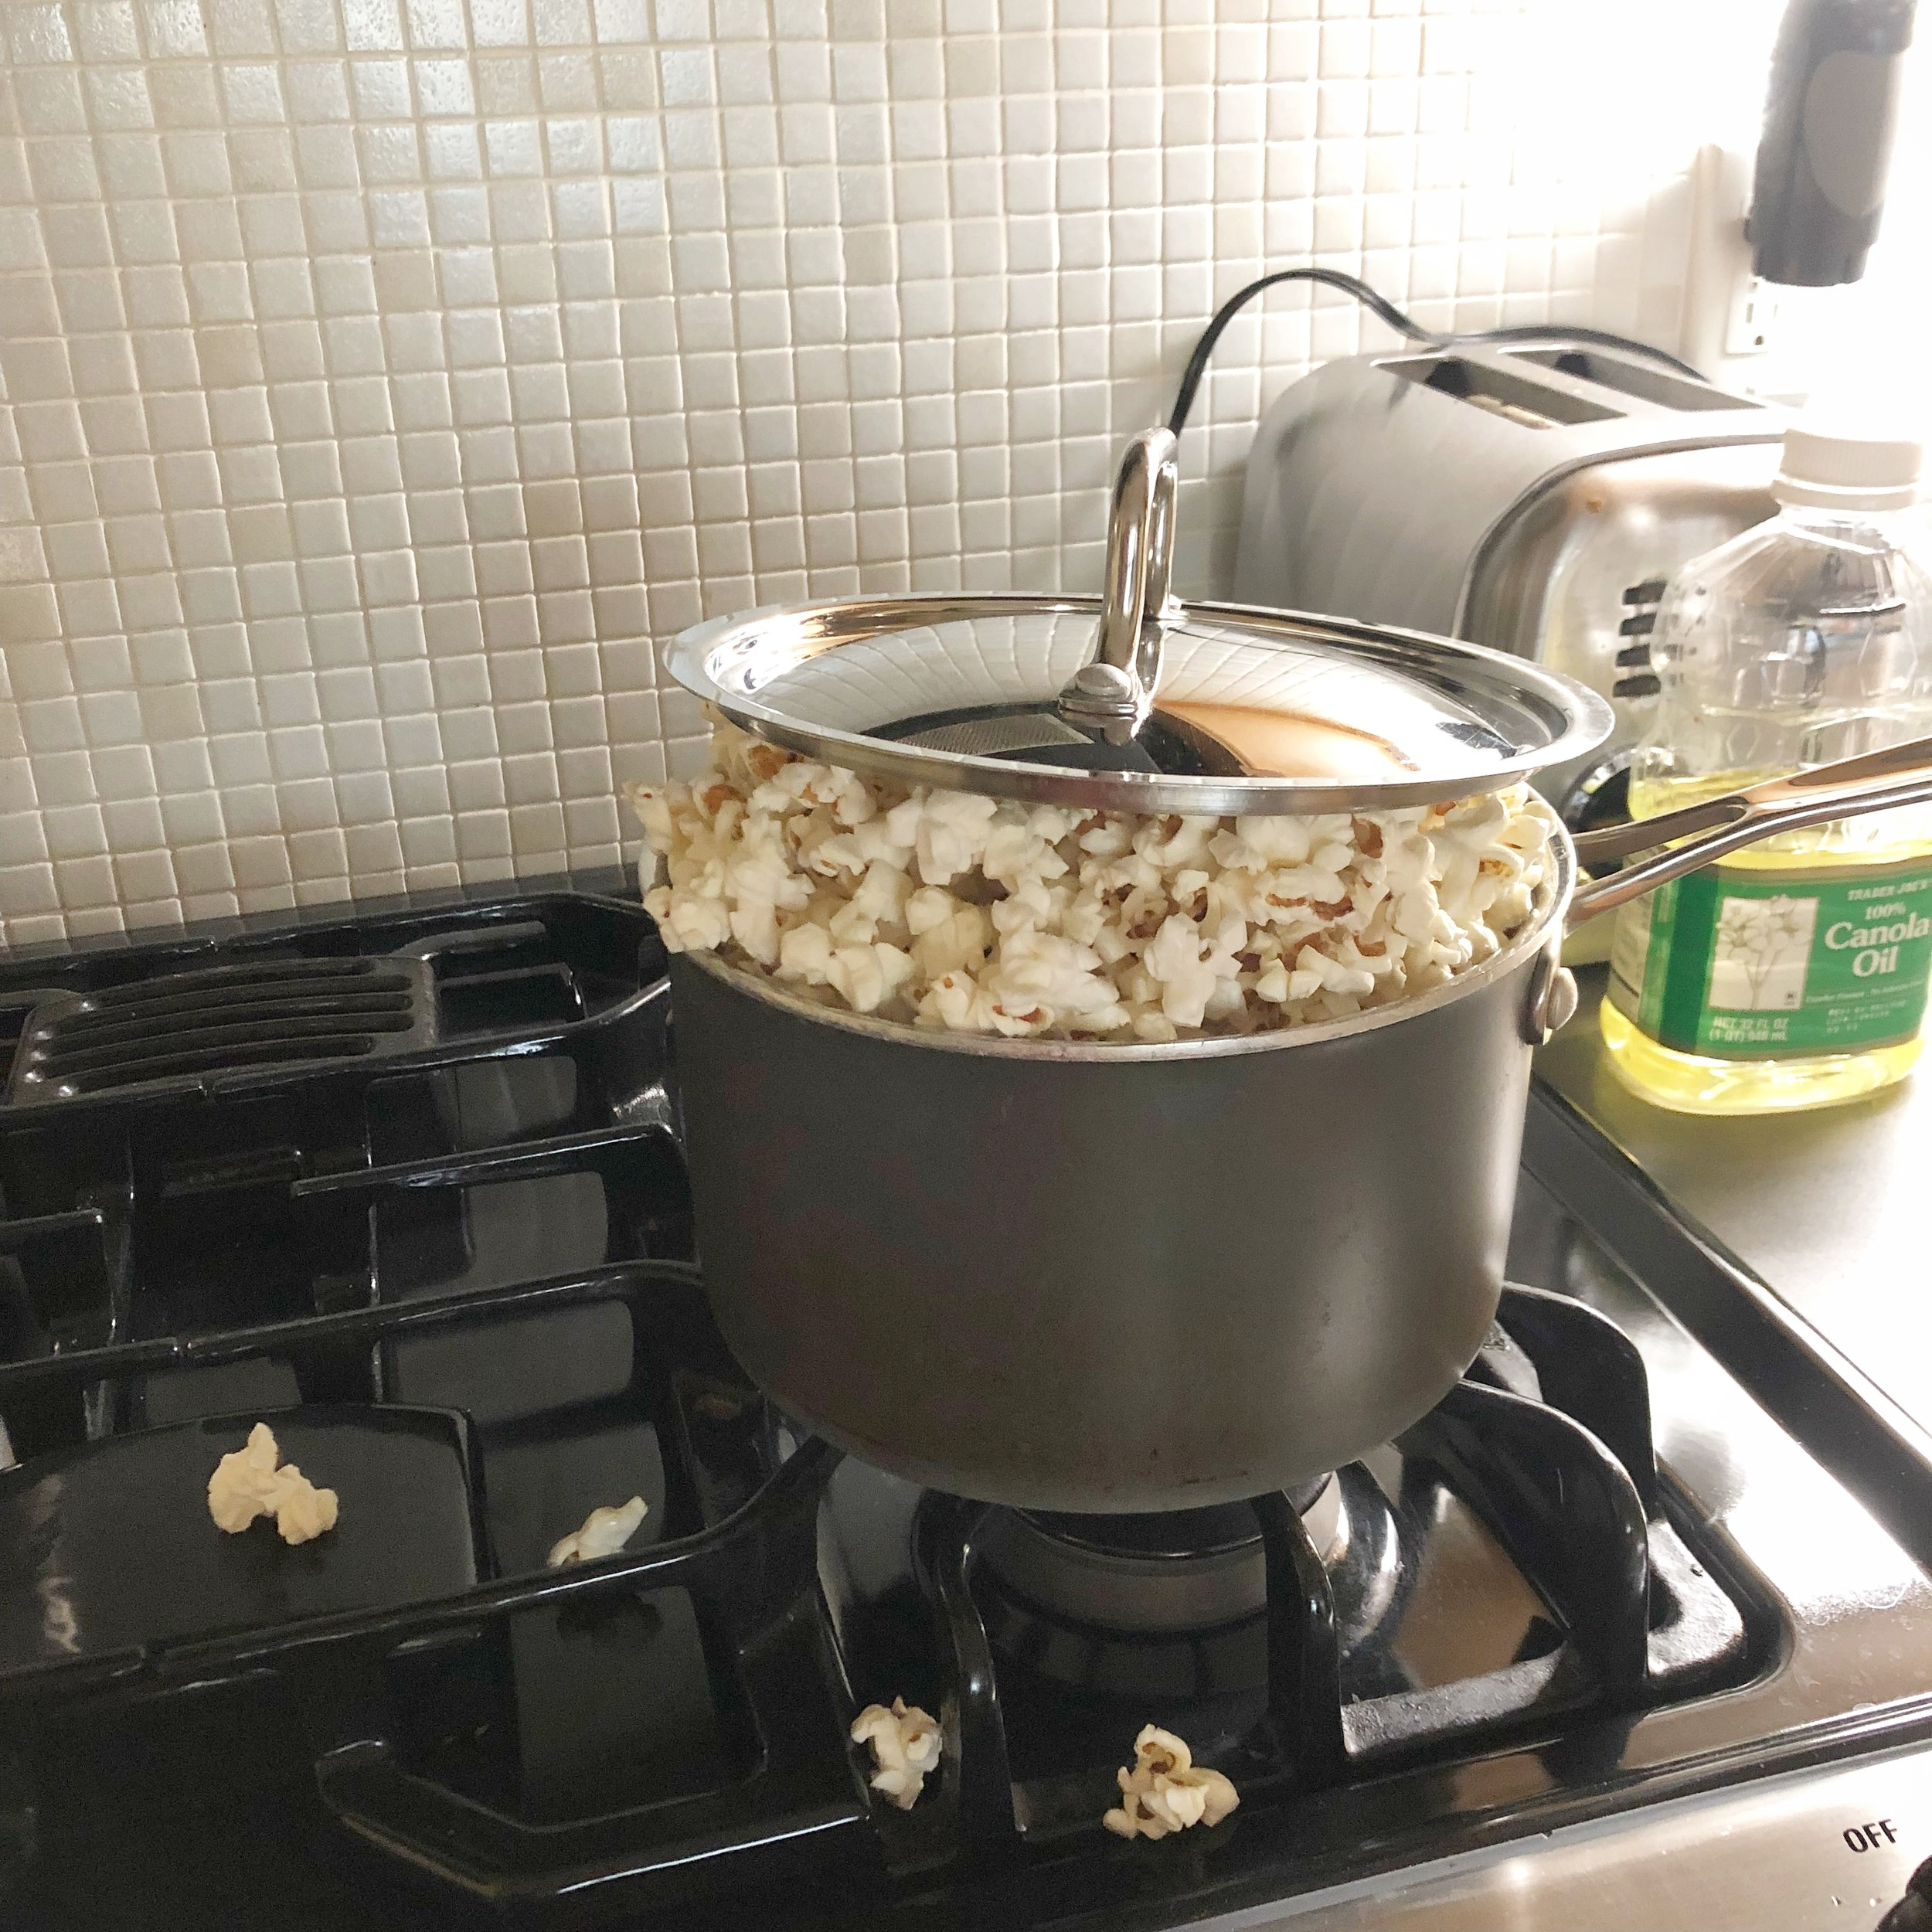 As soon as you hear popping, shake the pan continuously and vigorously over the heat until the popping sound subsides.